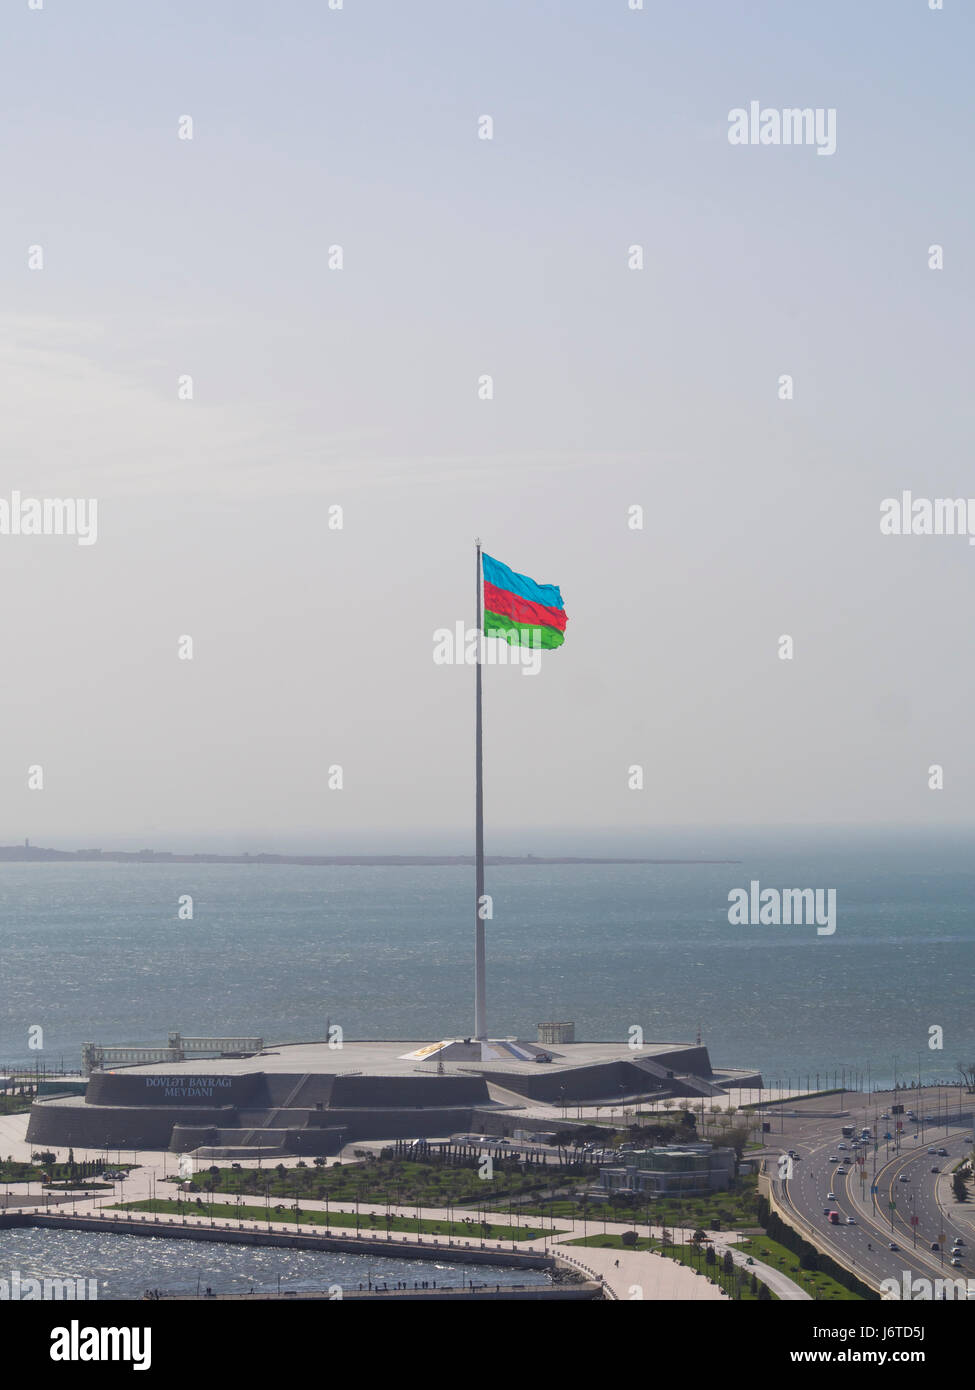 Baku, the capital city of Azerbaijan, on the shore of the Caspian sea, view of the giant flagpole and flag in Bayraq - Stock Image